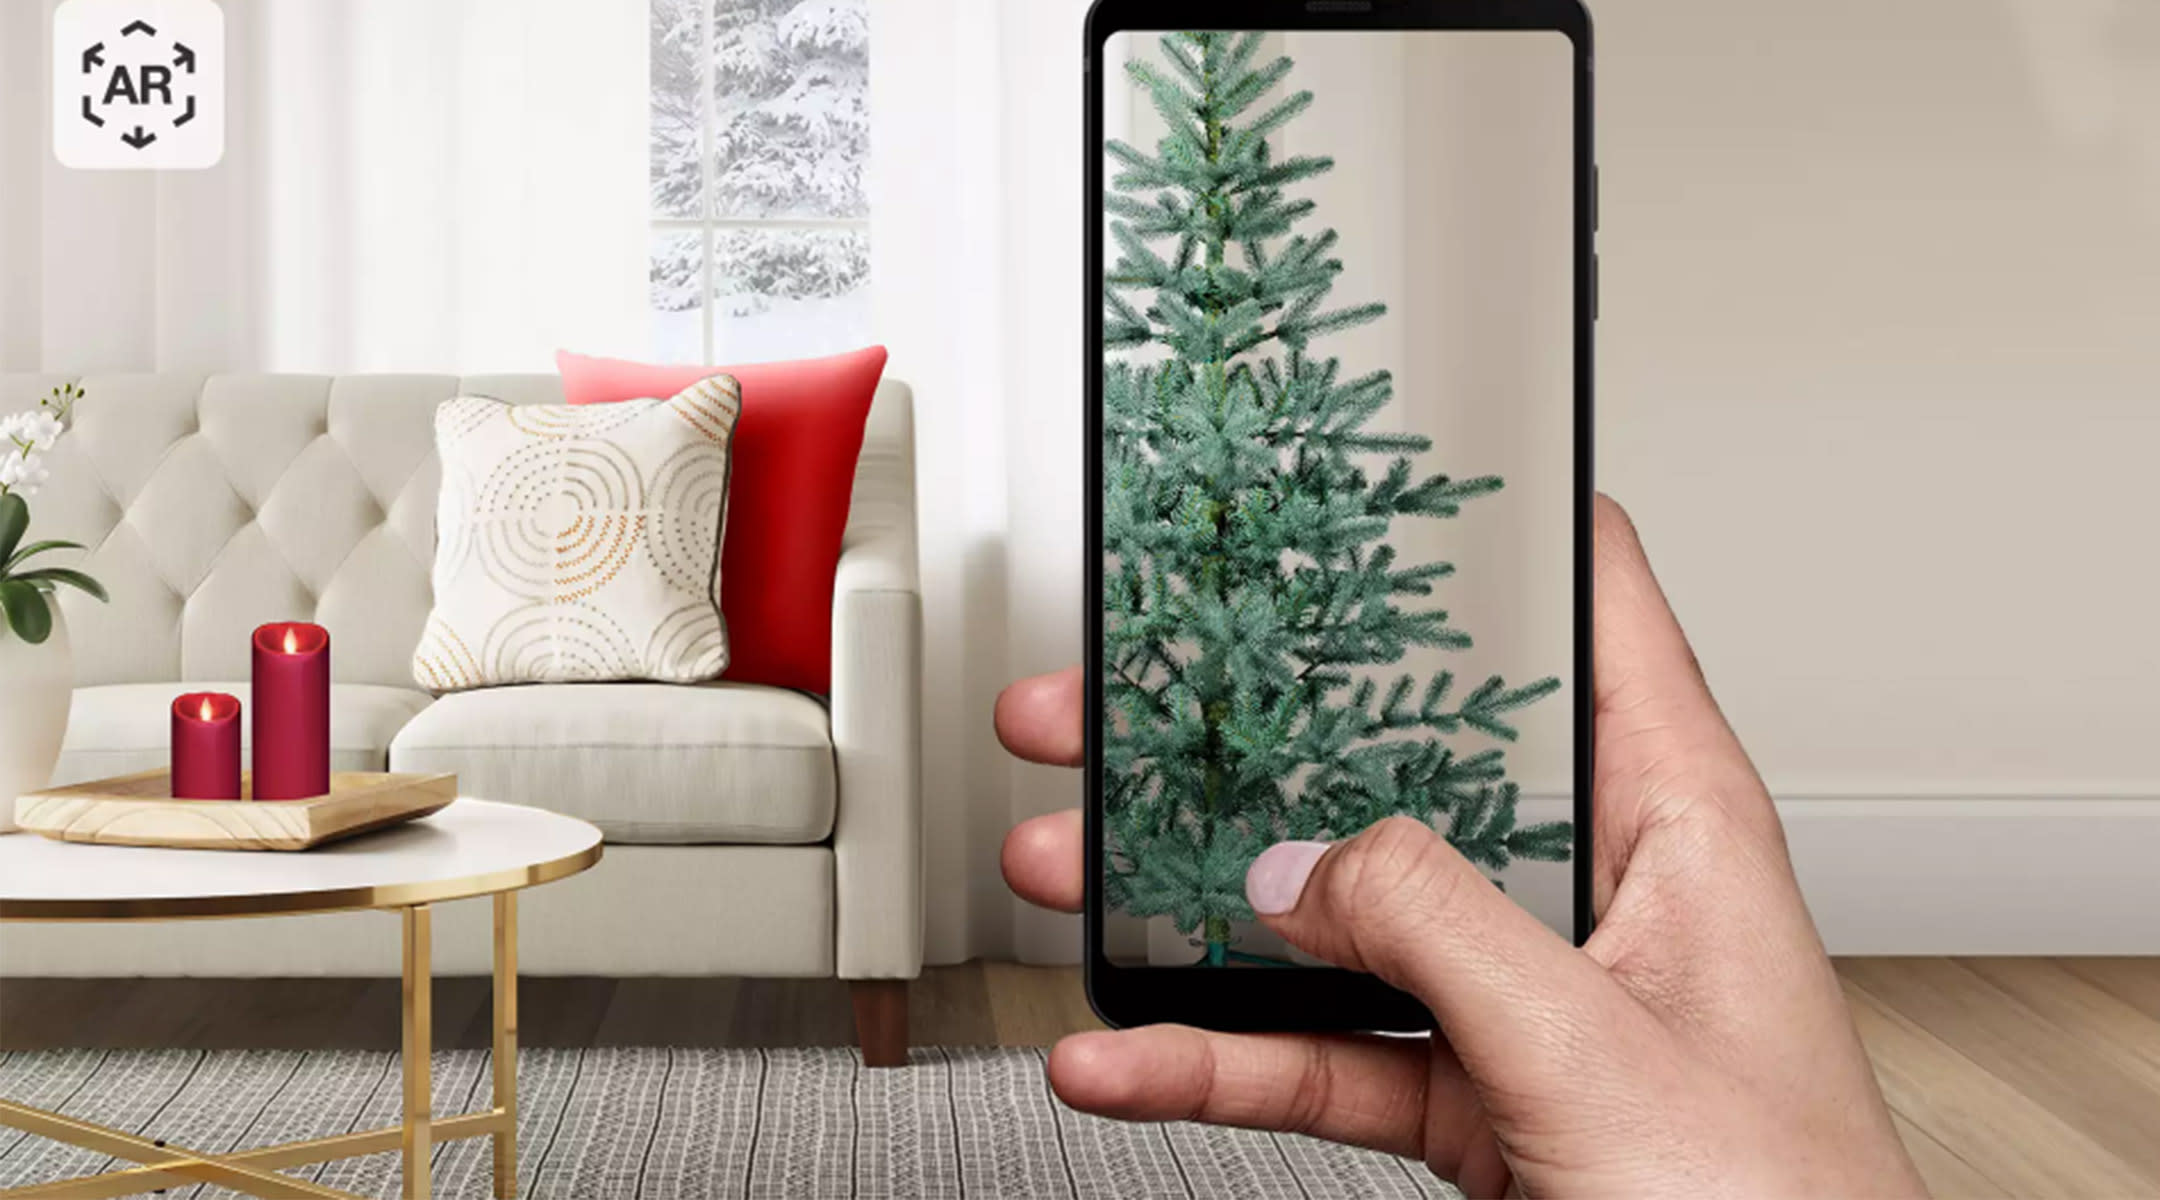 target's app allows you to preview how your christmas tree will look in your home